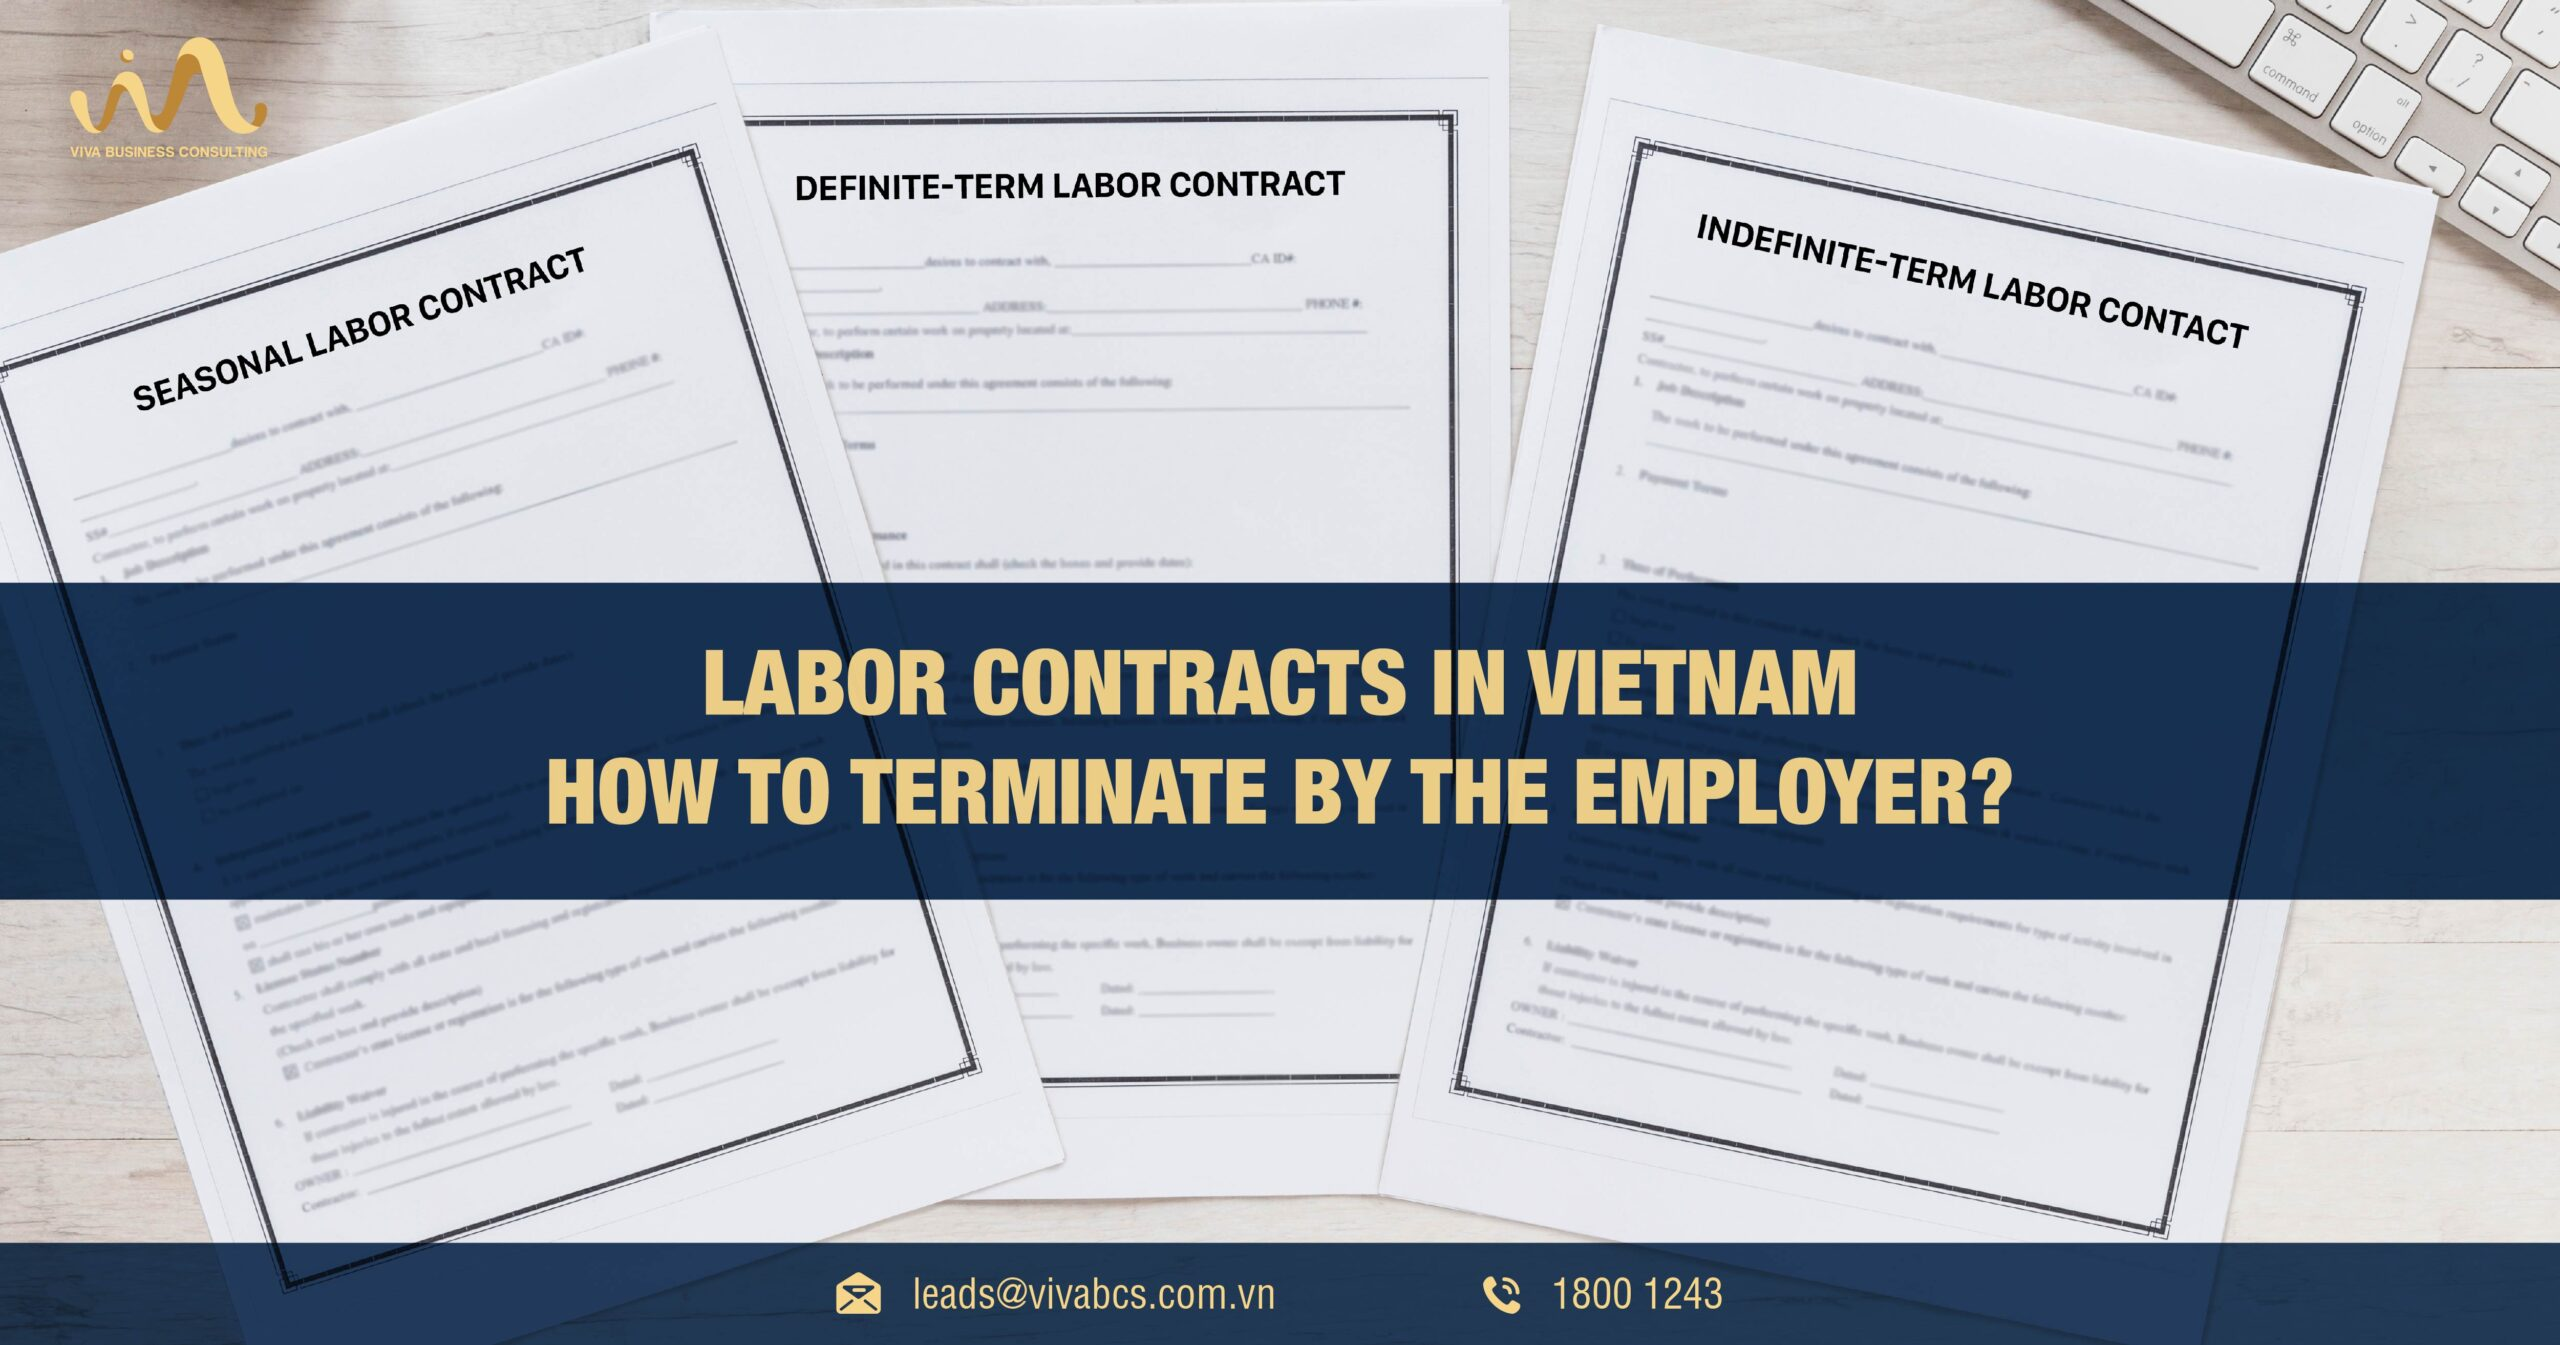 Type of labor contracts | Case of terminate by the employer?